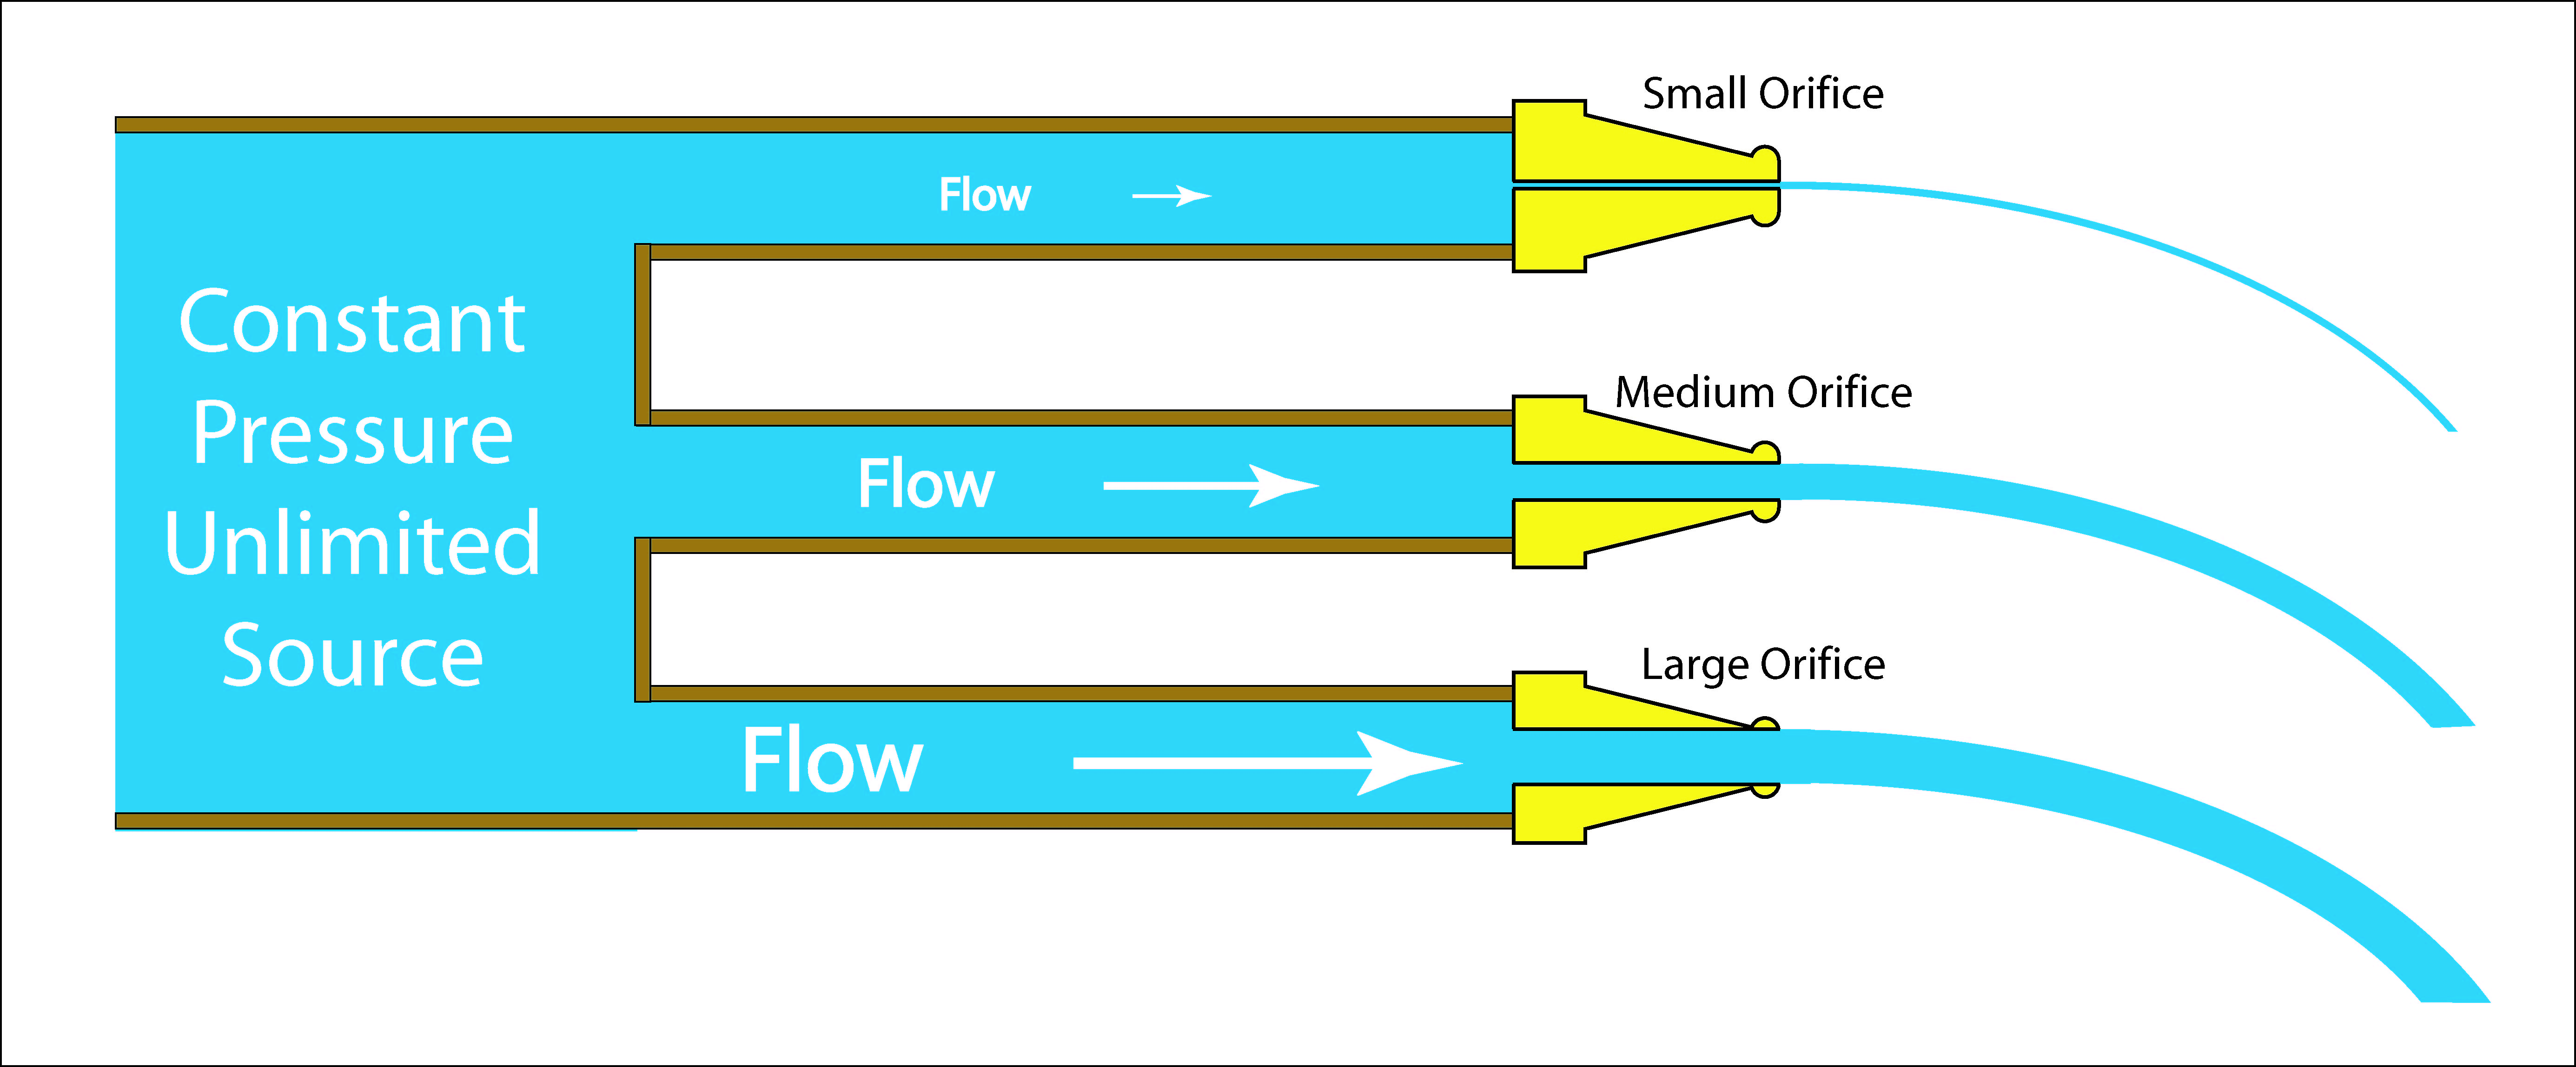 flow rate and pressure drop relationship trust